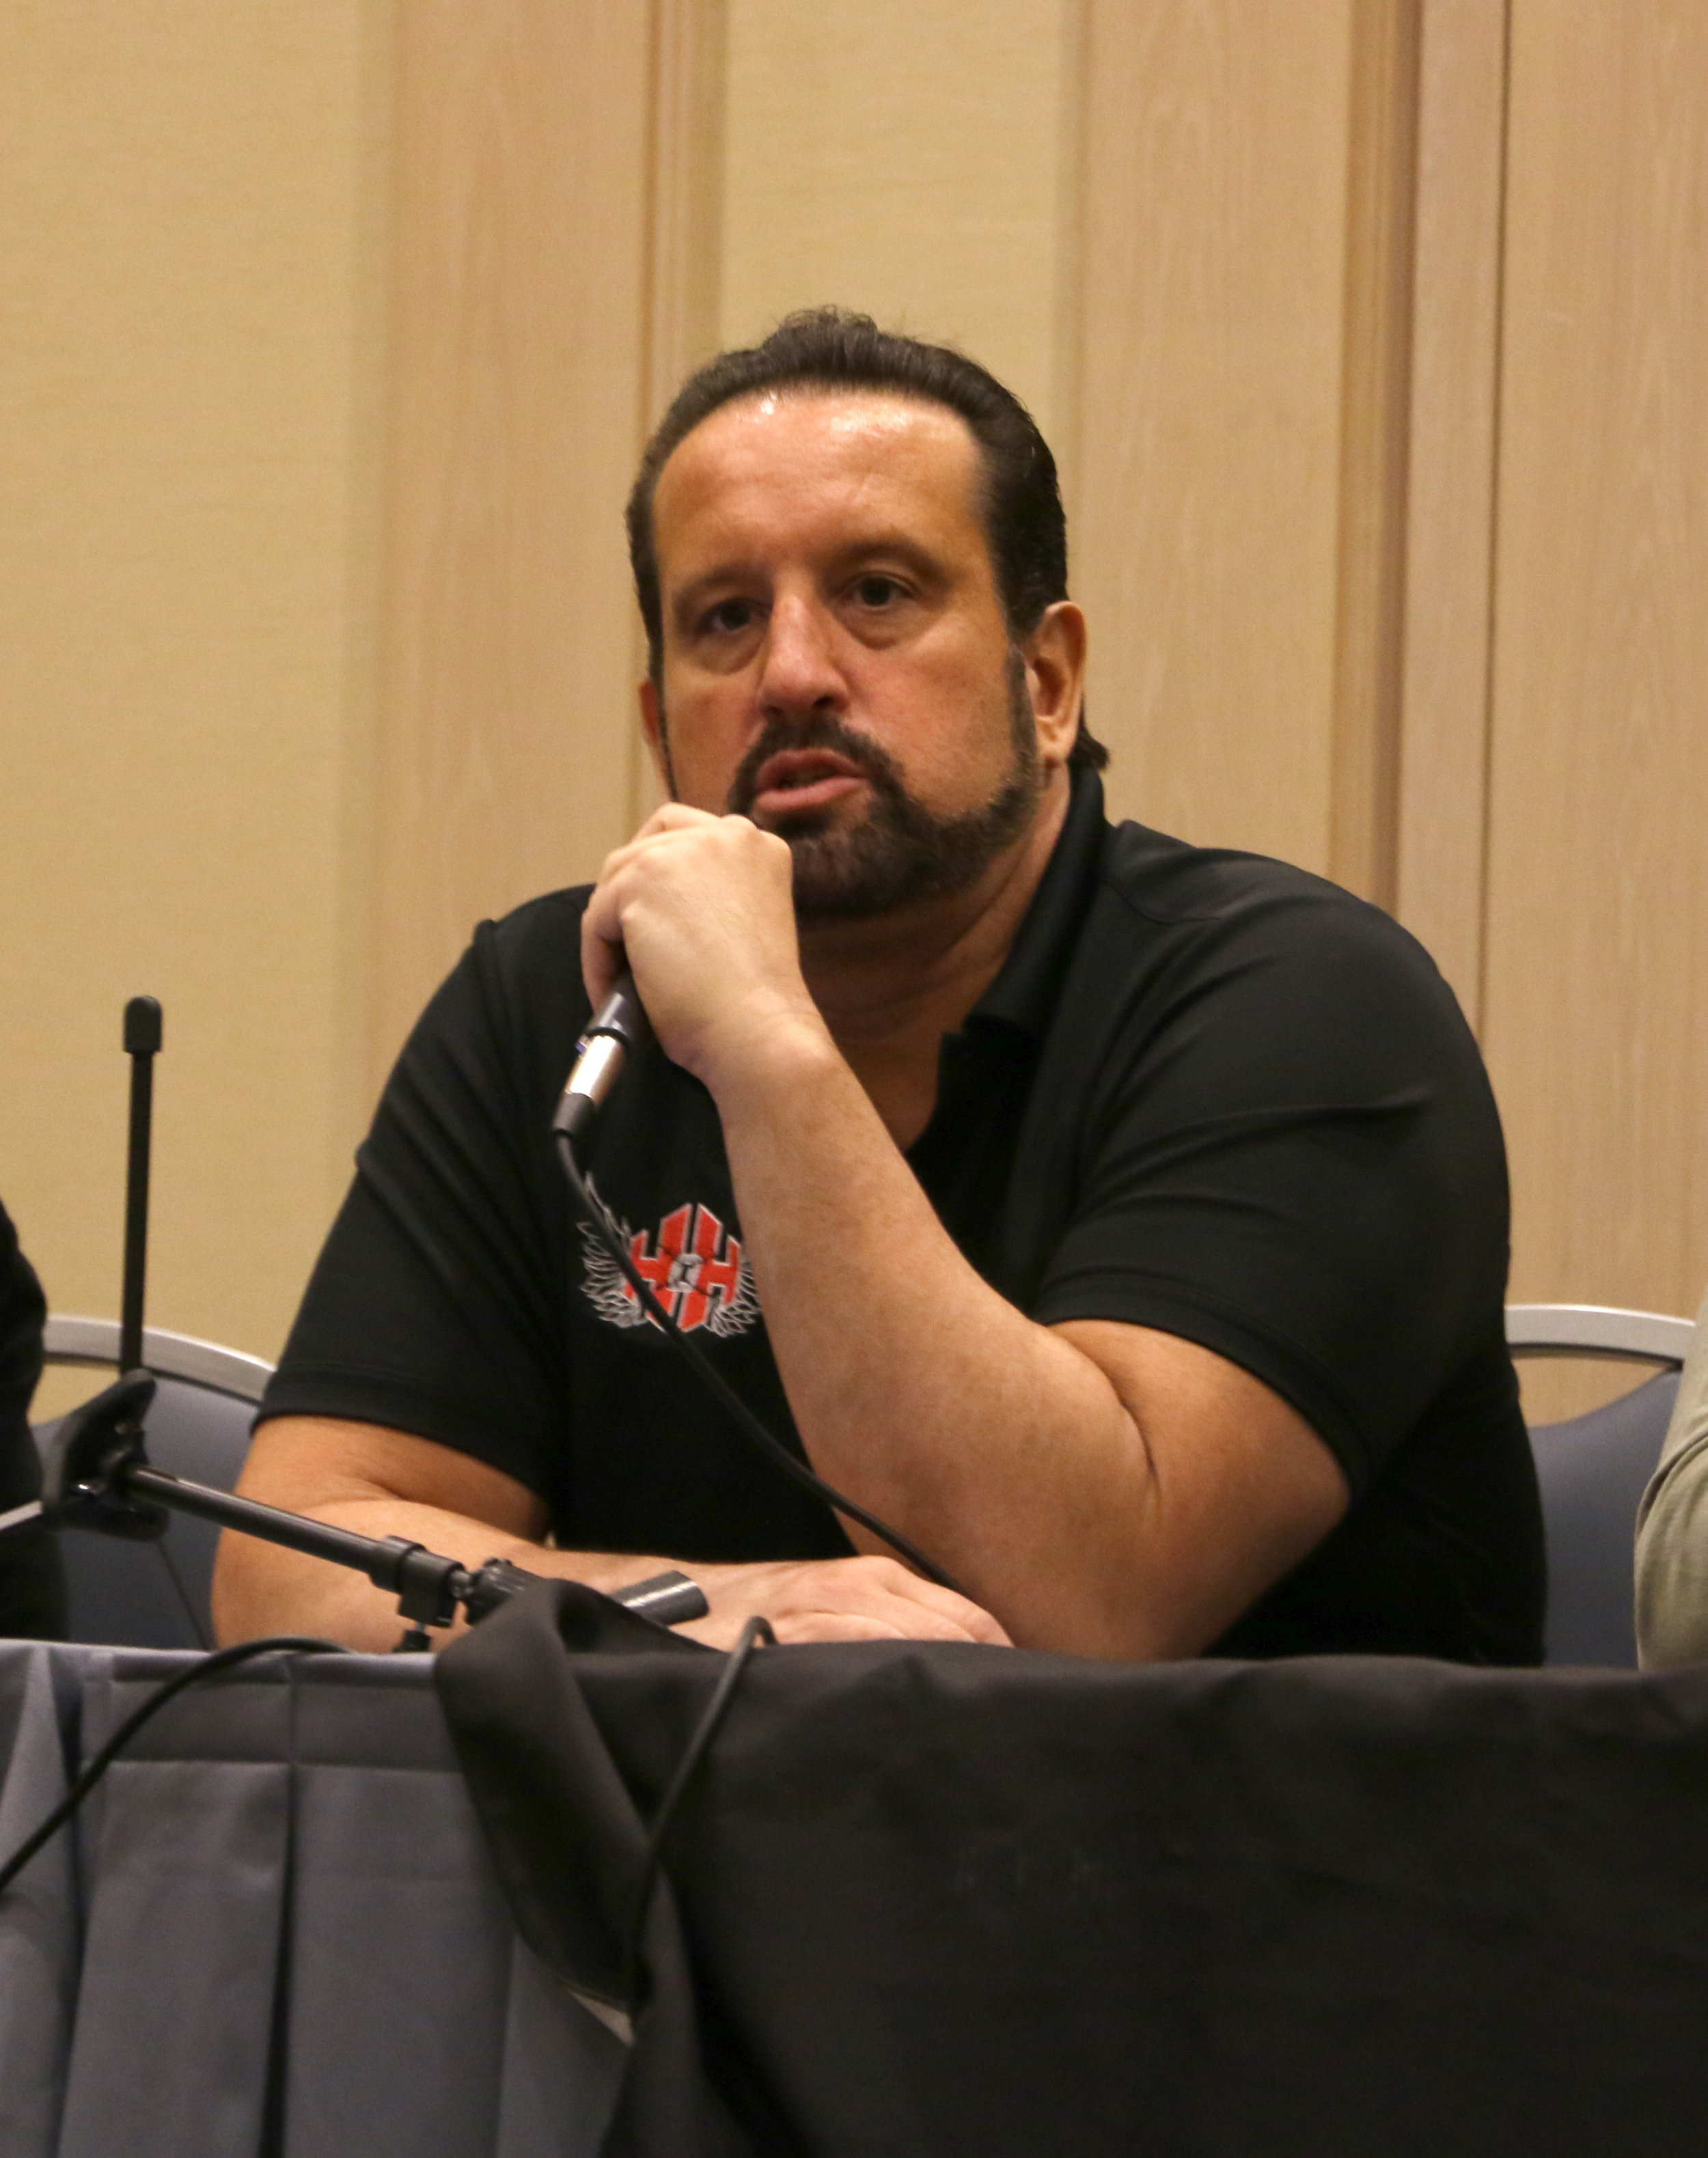 Tommy Dreamer speaks during a wrestlers' panel at Wizard World Chicago on Saturday, Aug. 25, 2018.  (Photo by Mike Pankow)